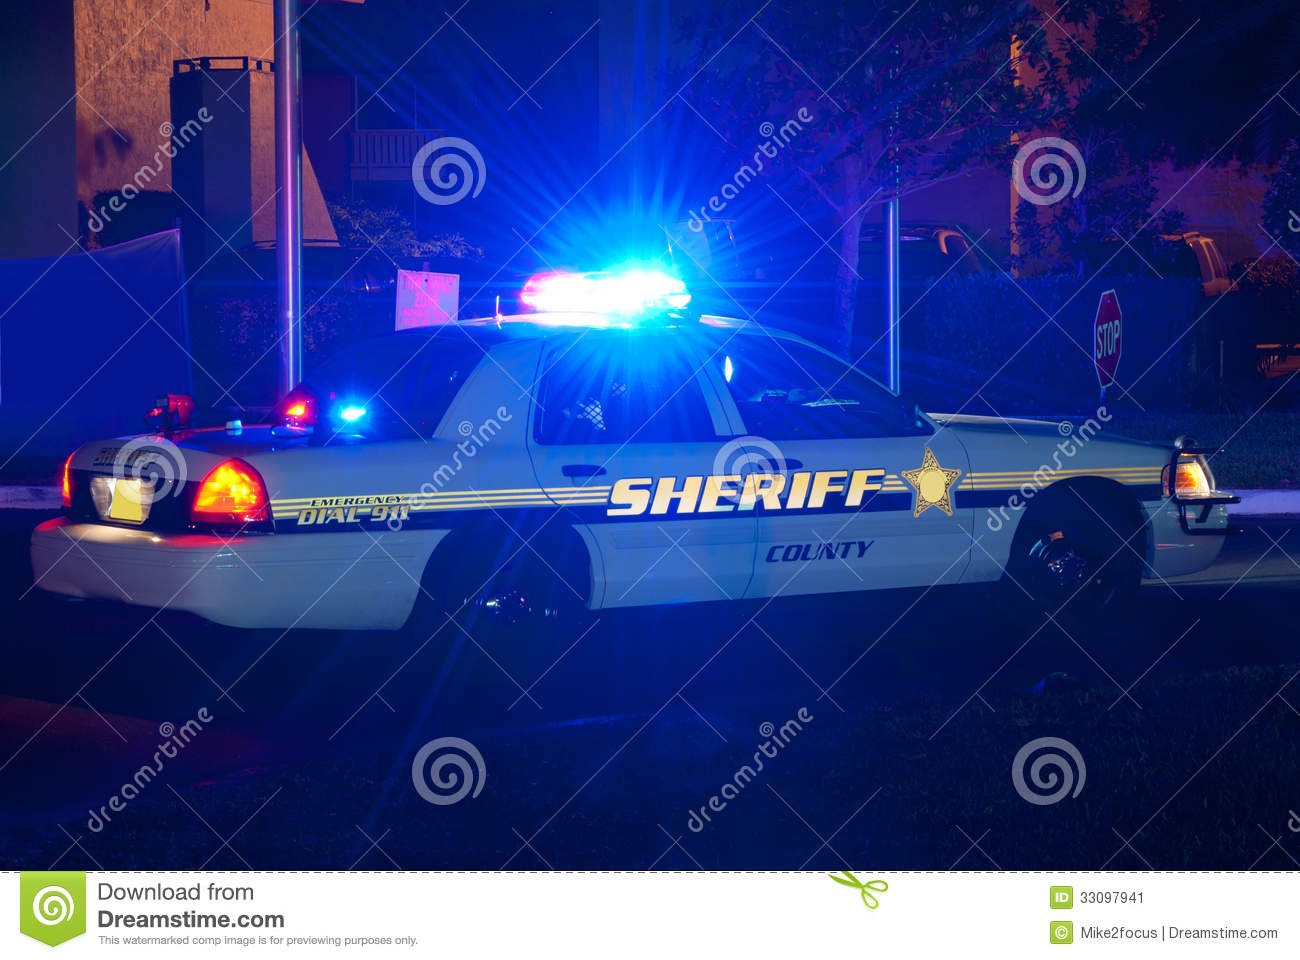 242 Car Lights Sheriff Photos Free Royalty Free Stock Photos From Dreamstime